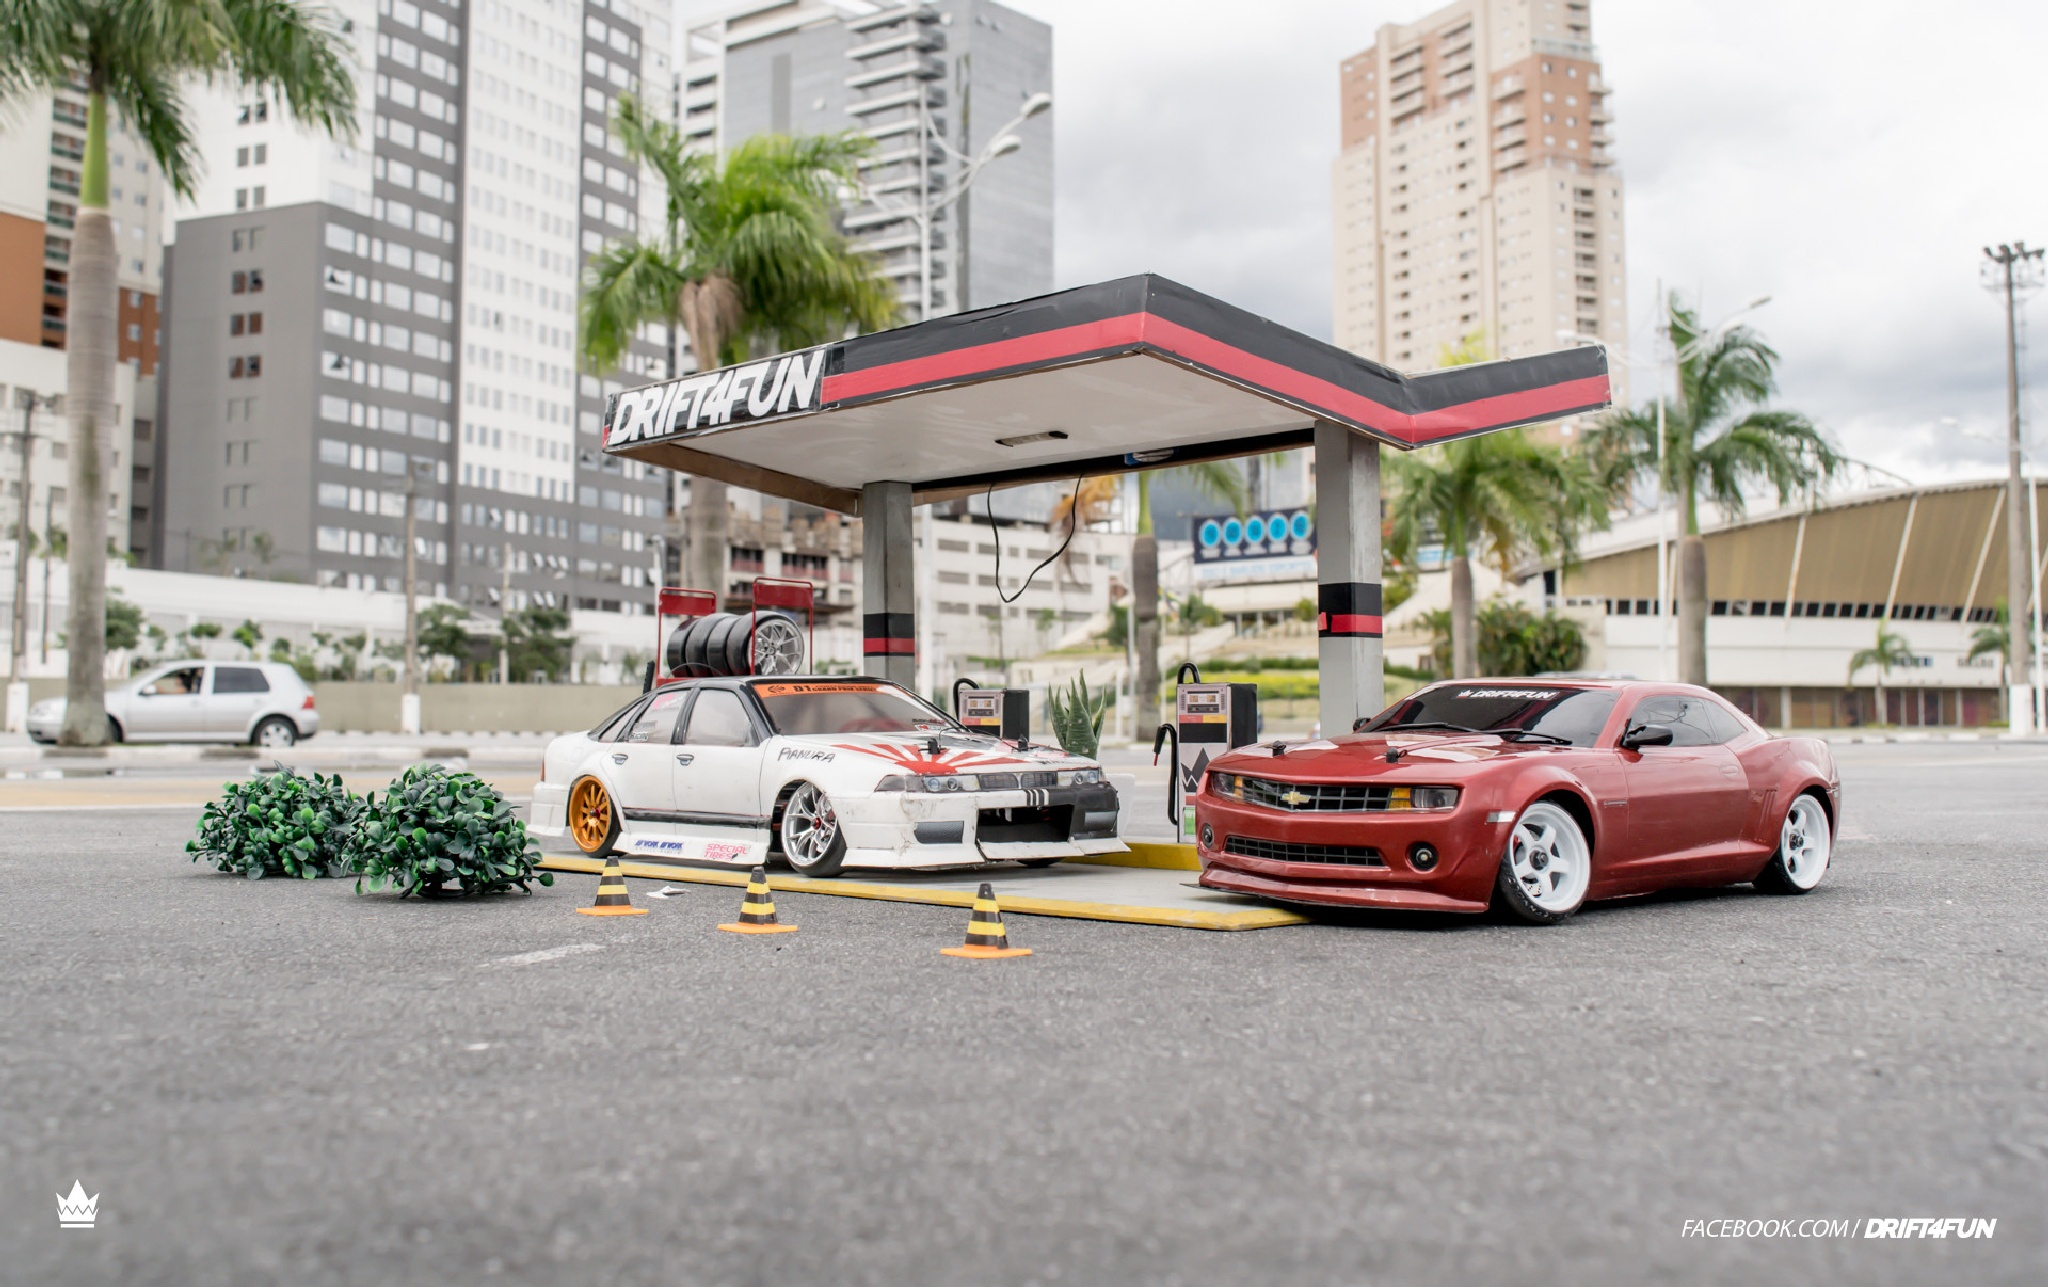 Gas station by Marcus Oliveira